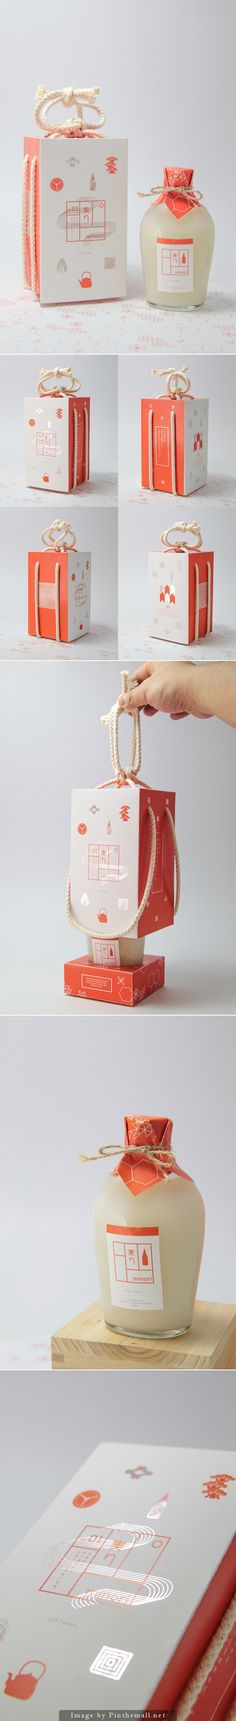 The very beautiful Minori Sake packaging curated by Packaging Diva PD. Top #2014 team pin by a number of pinners.